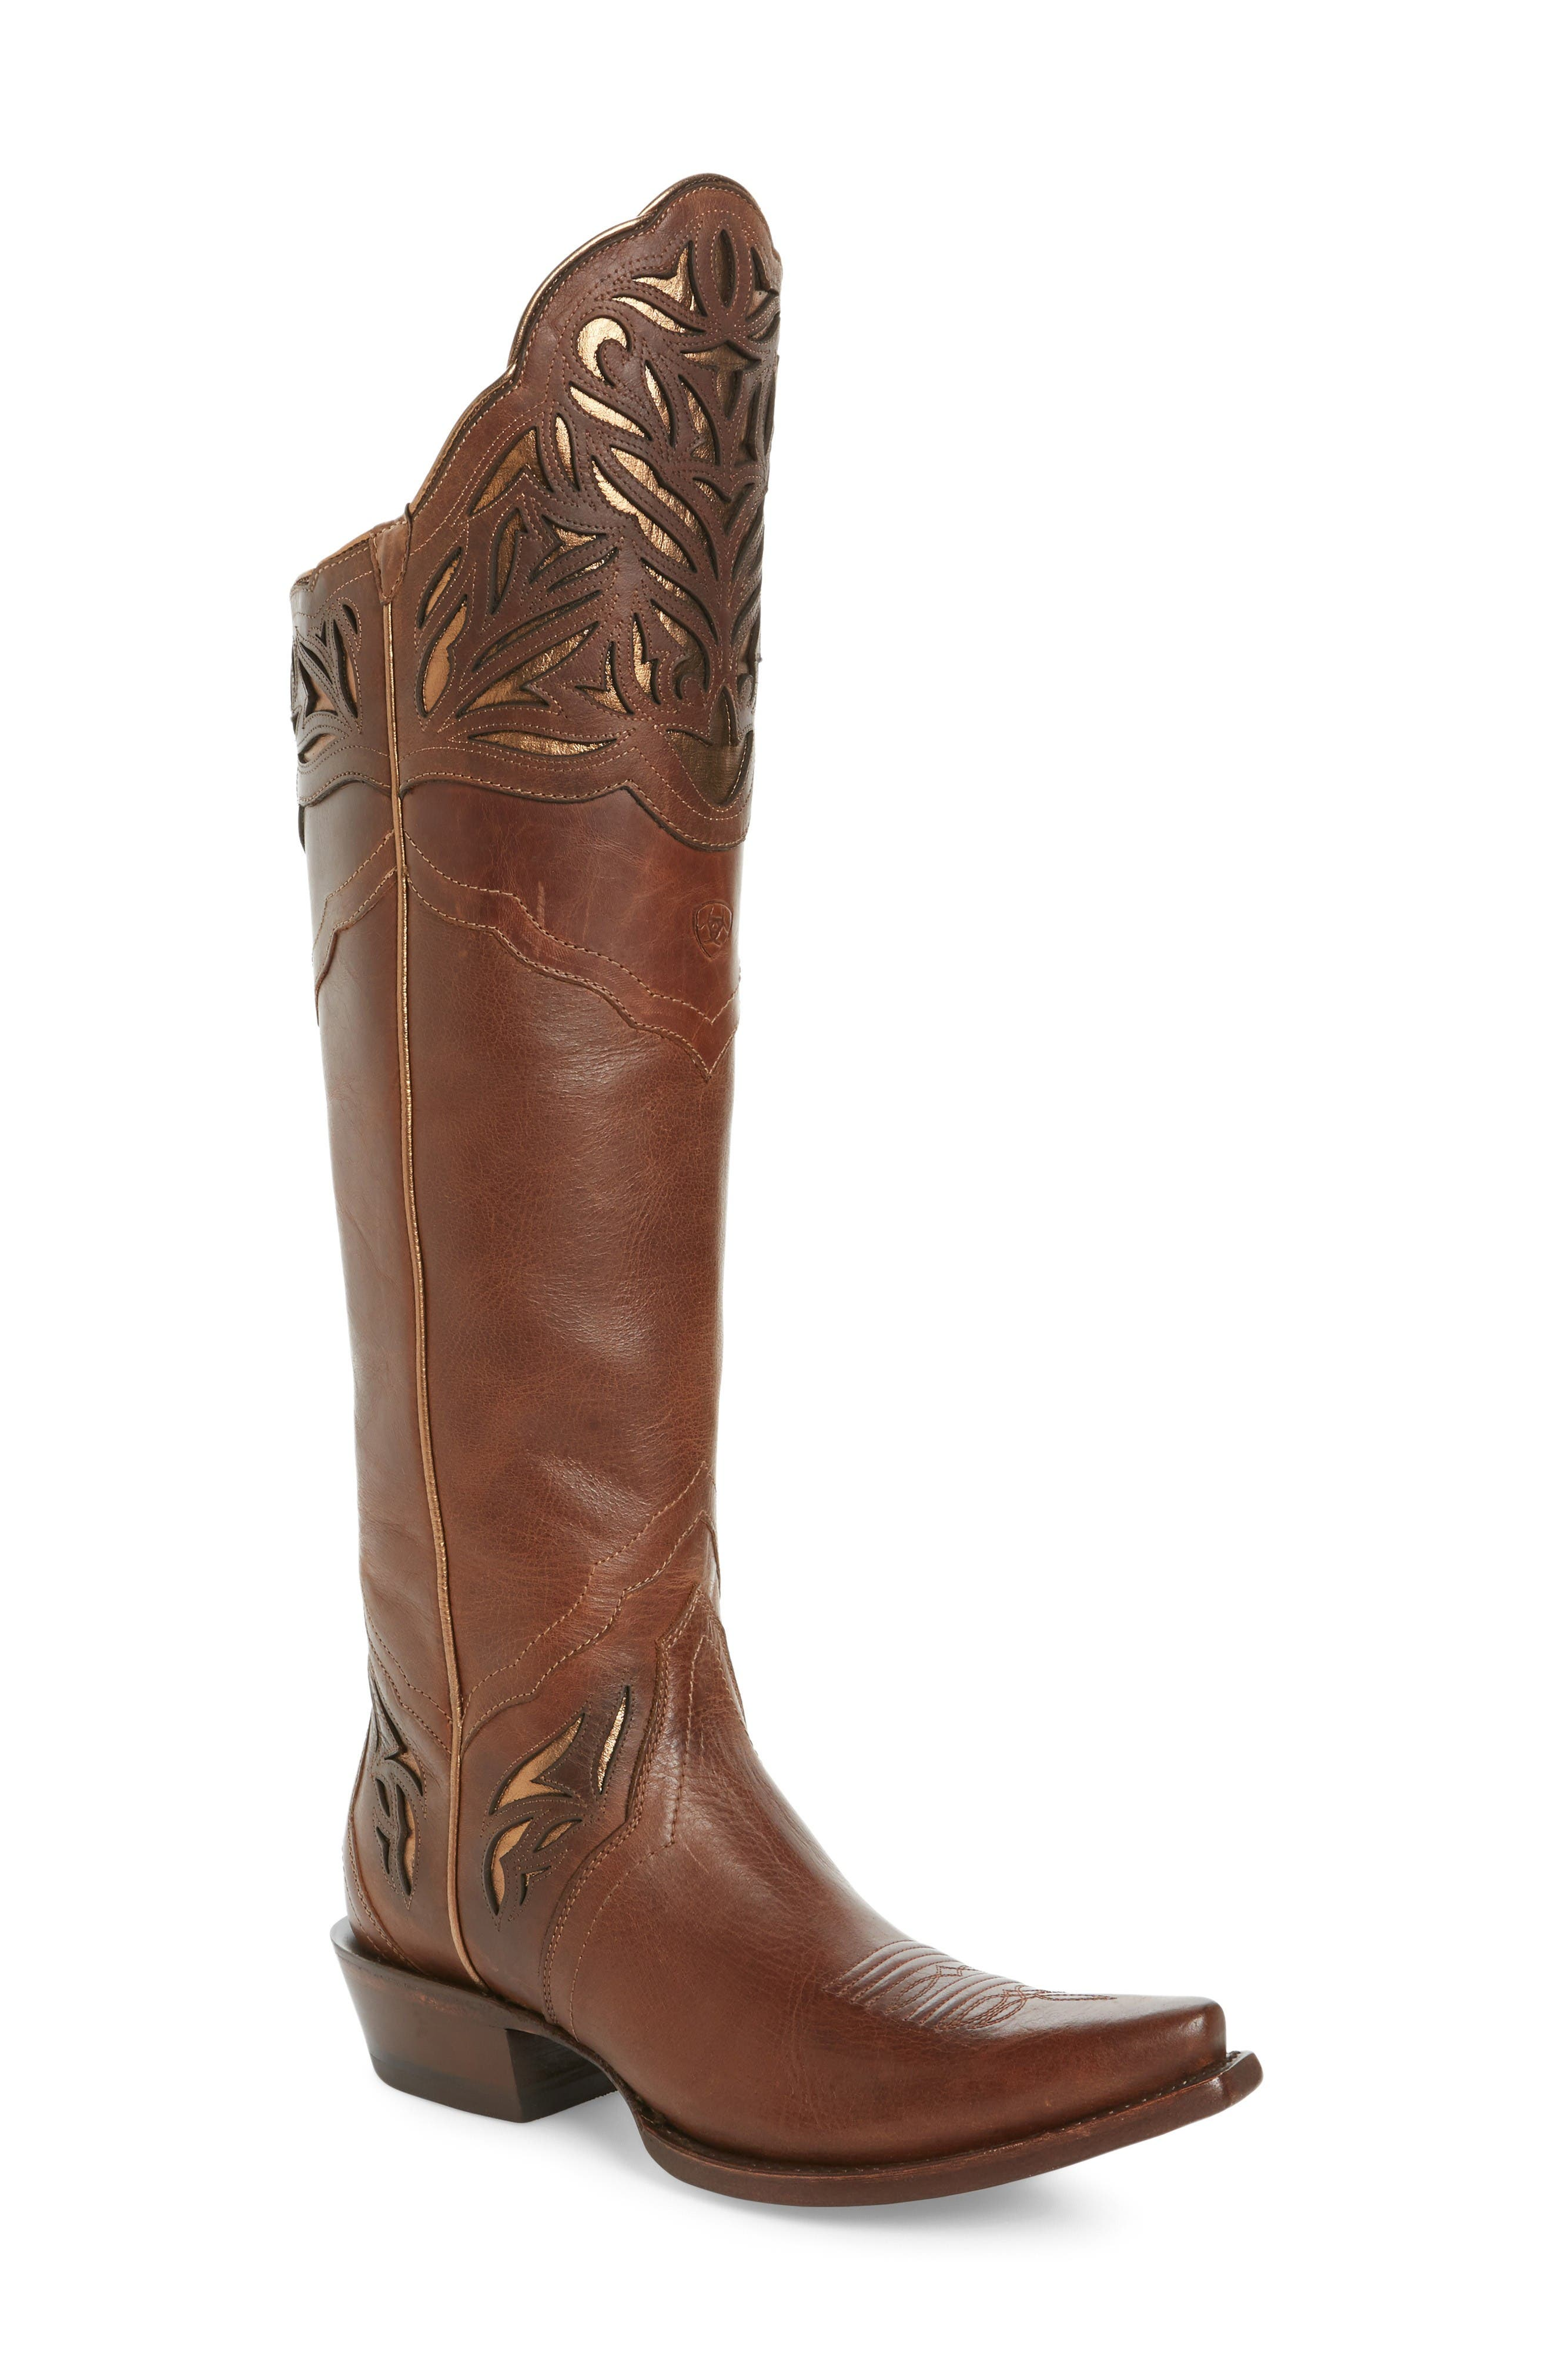 ARIAT Chaparral Over the Knee Western Boot